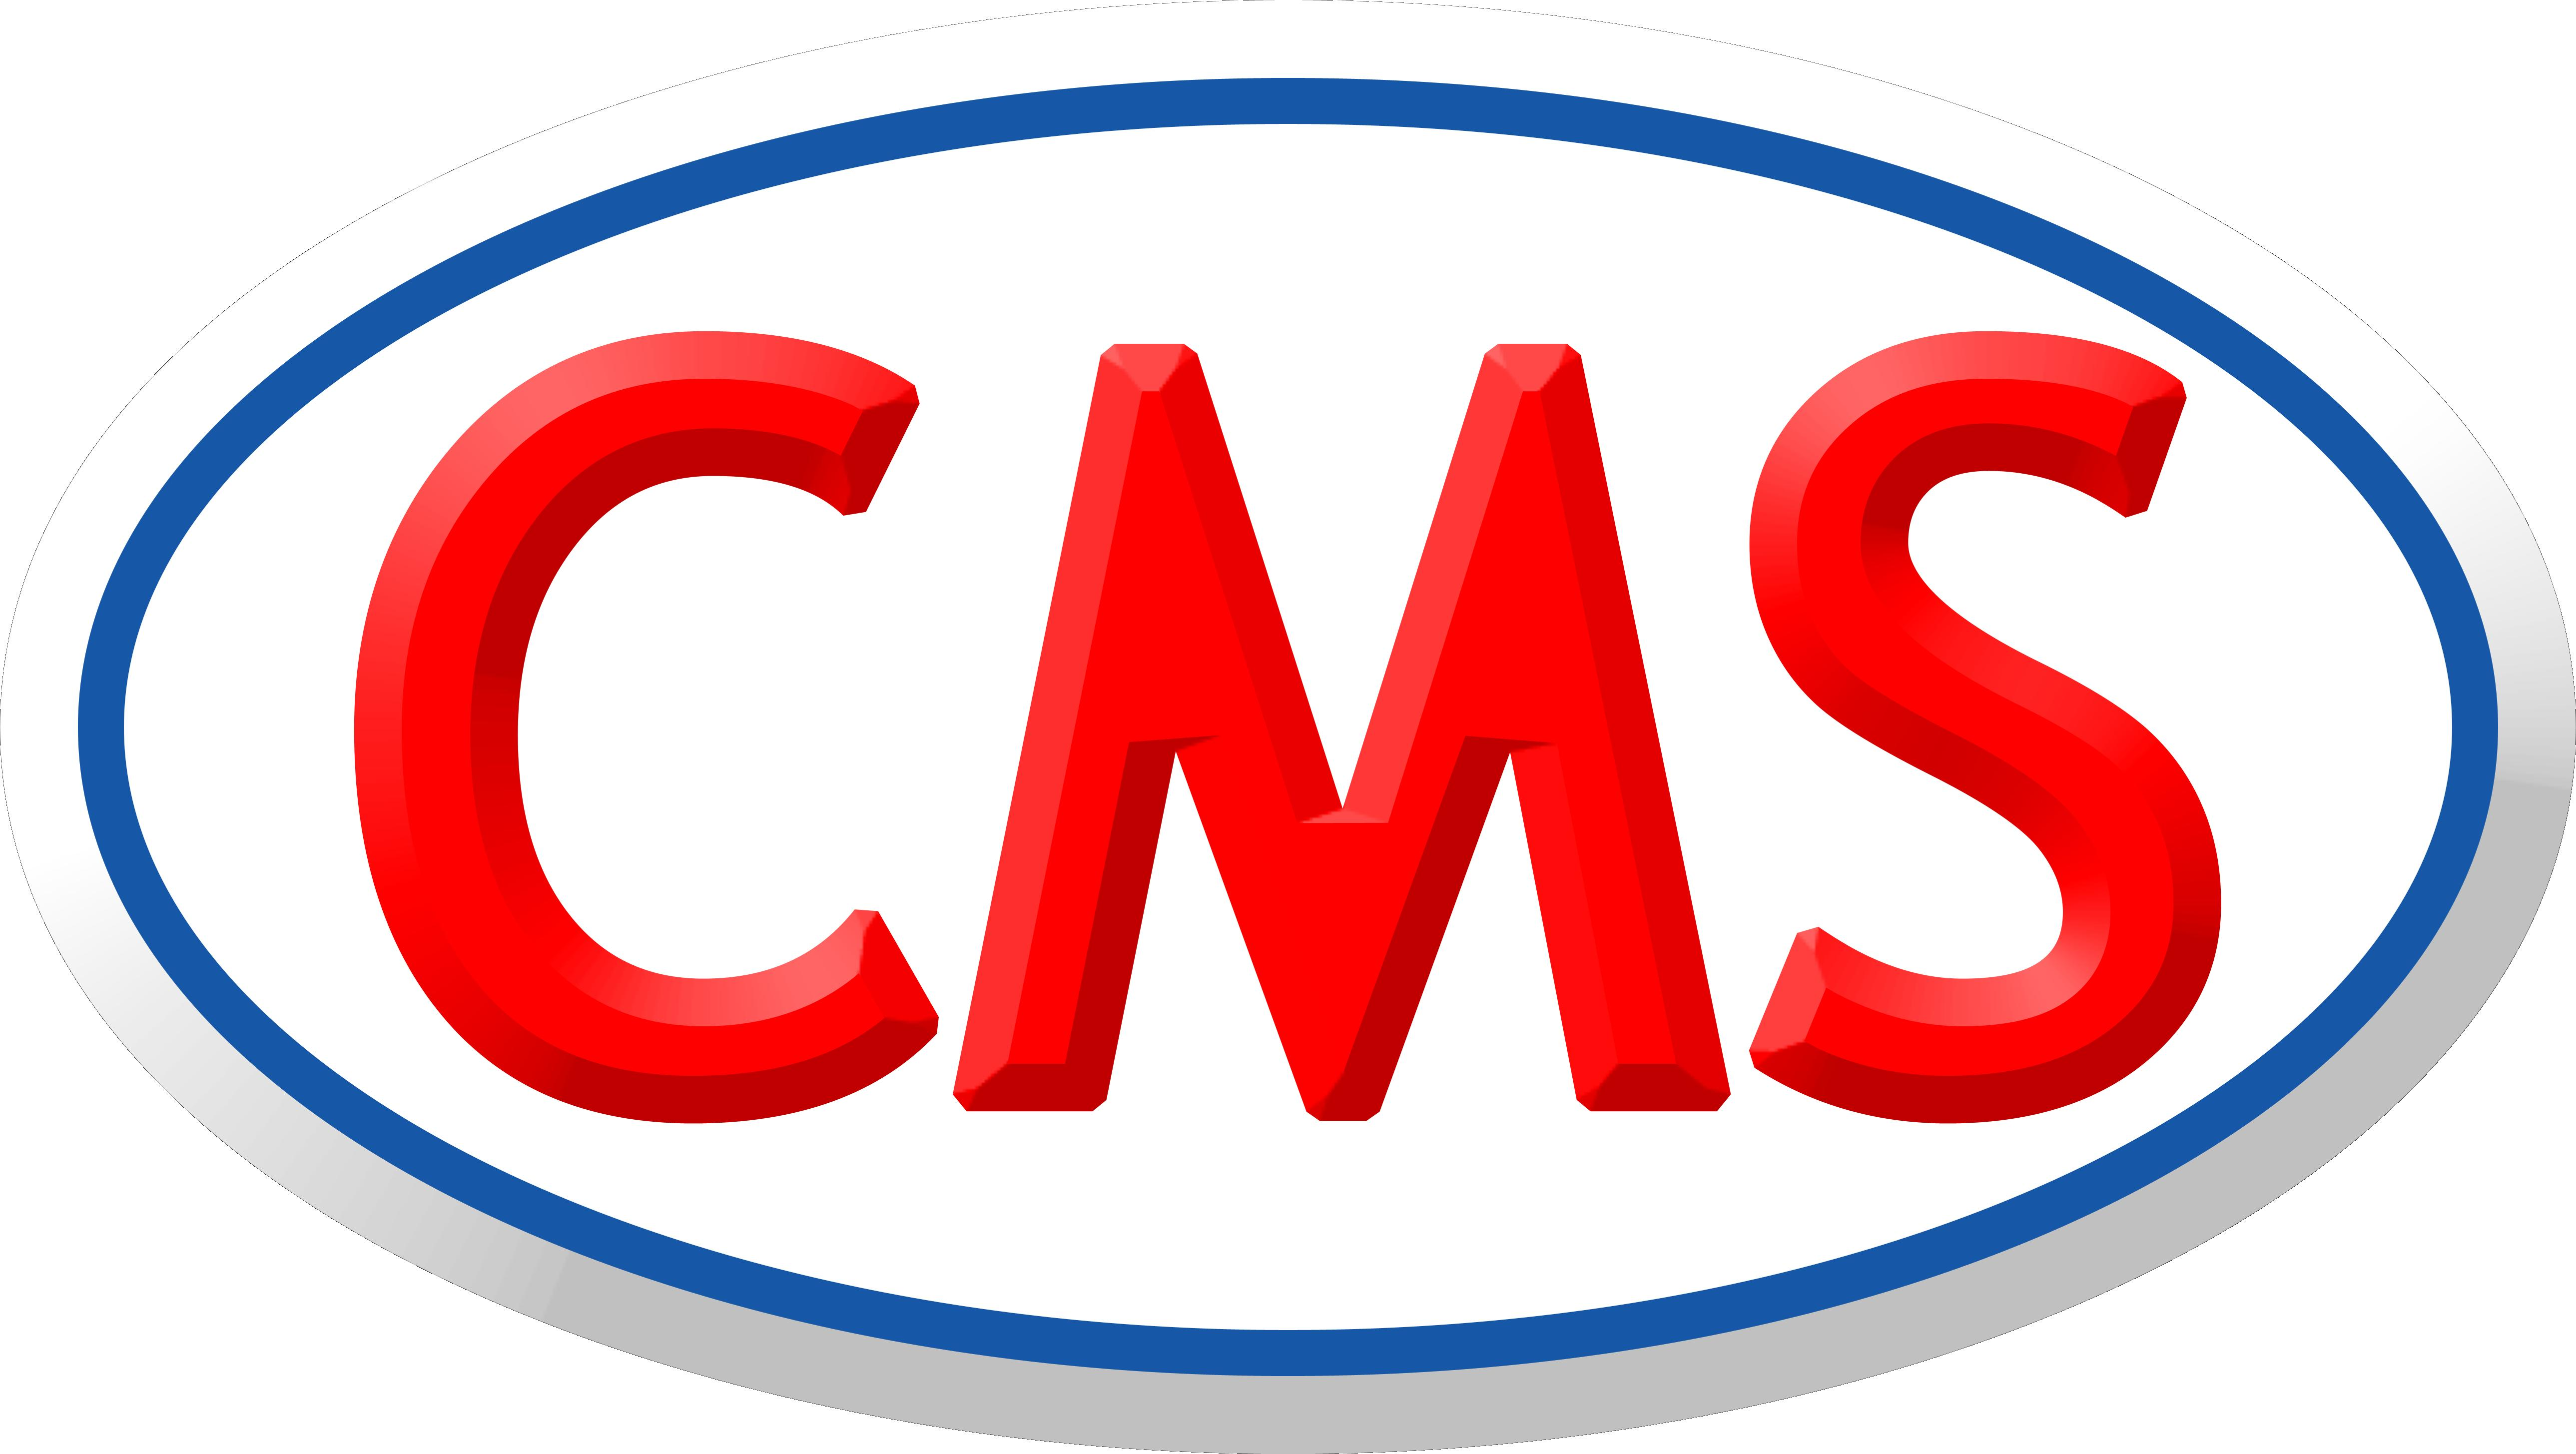 Cms: CMS Approves Optimal's Authority To Operate